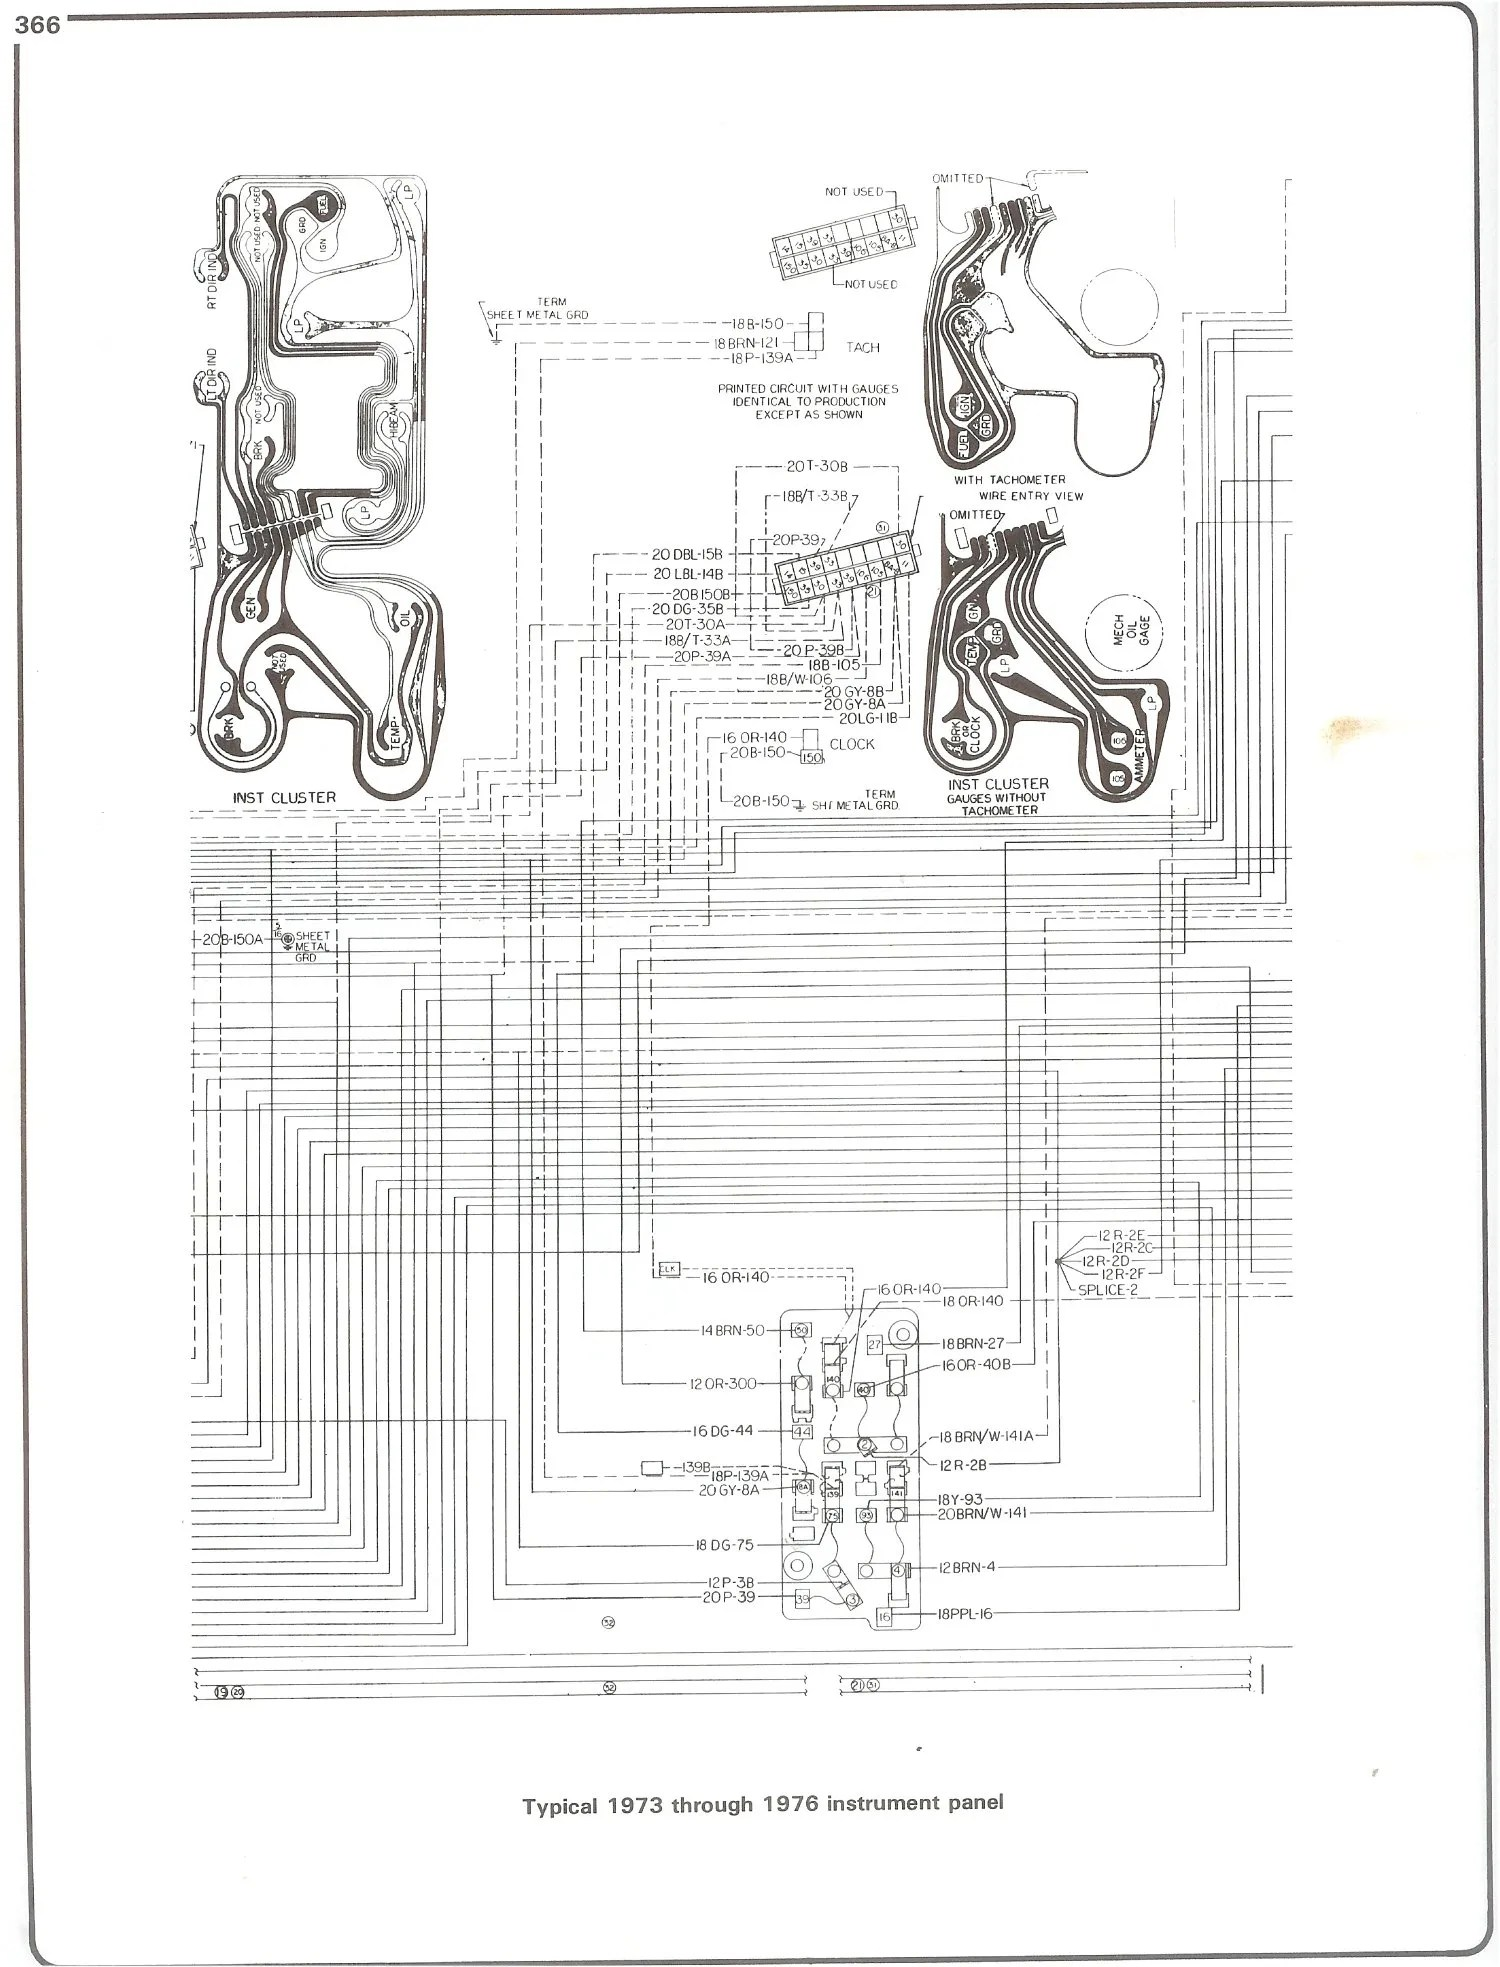 hight resolution of 1980 chevy luv wiring diagram wiring diagramcomplete 73 87 wiring diagrams1980 chevy luv wiring diagram 16